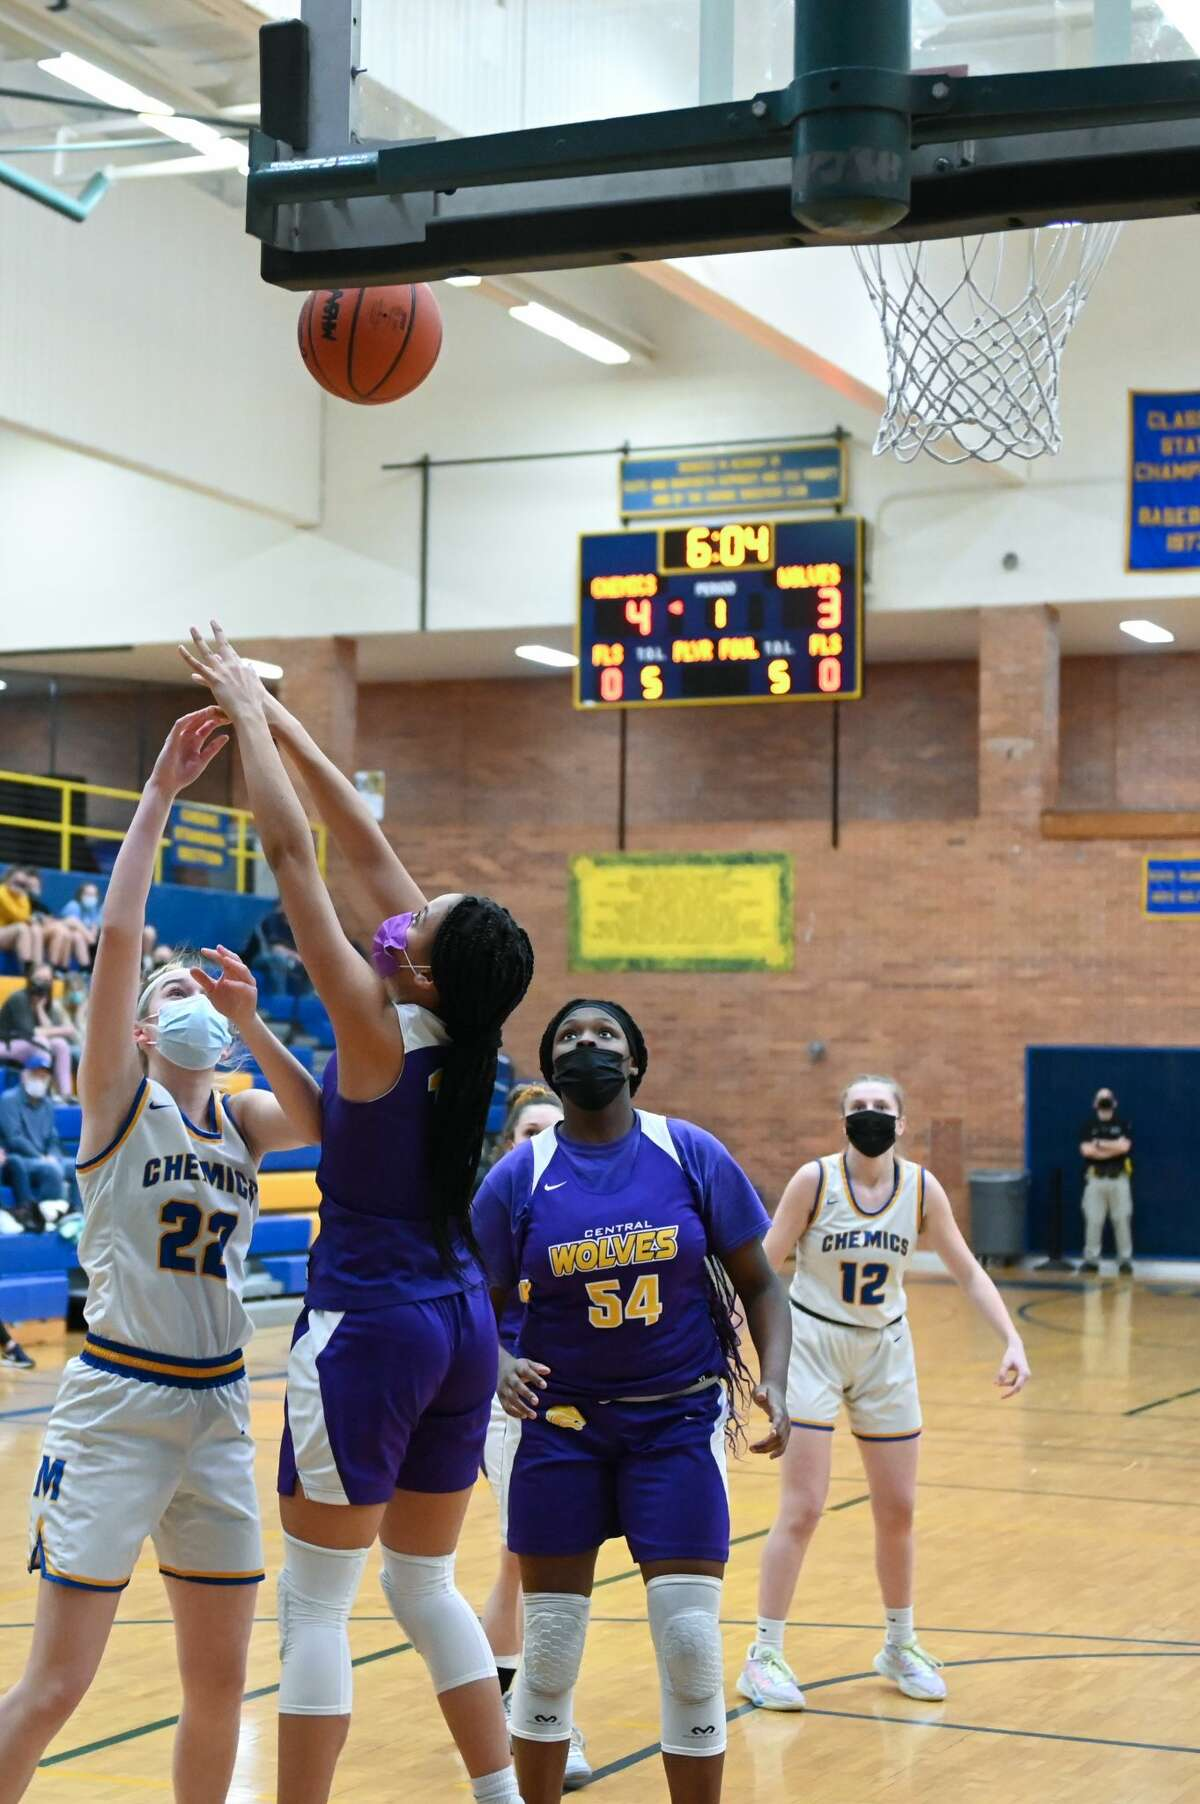 Midland's Anna Tuck puts up a shot during the Chemics' district semifinal game against Bay City Central Wednesday, March 24, 2021 at Midland High School. (Adam Ferman/ for the Daily News)